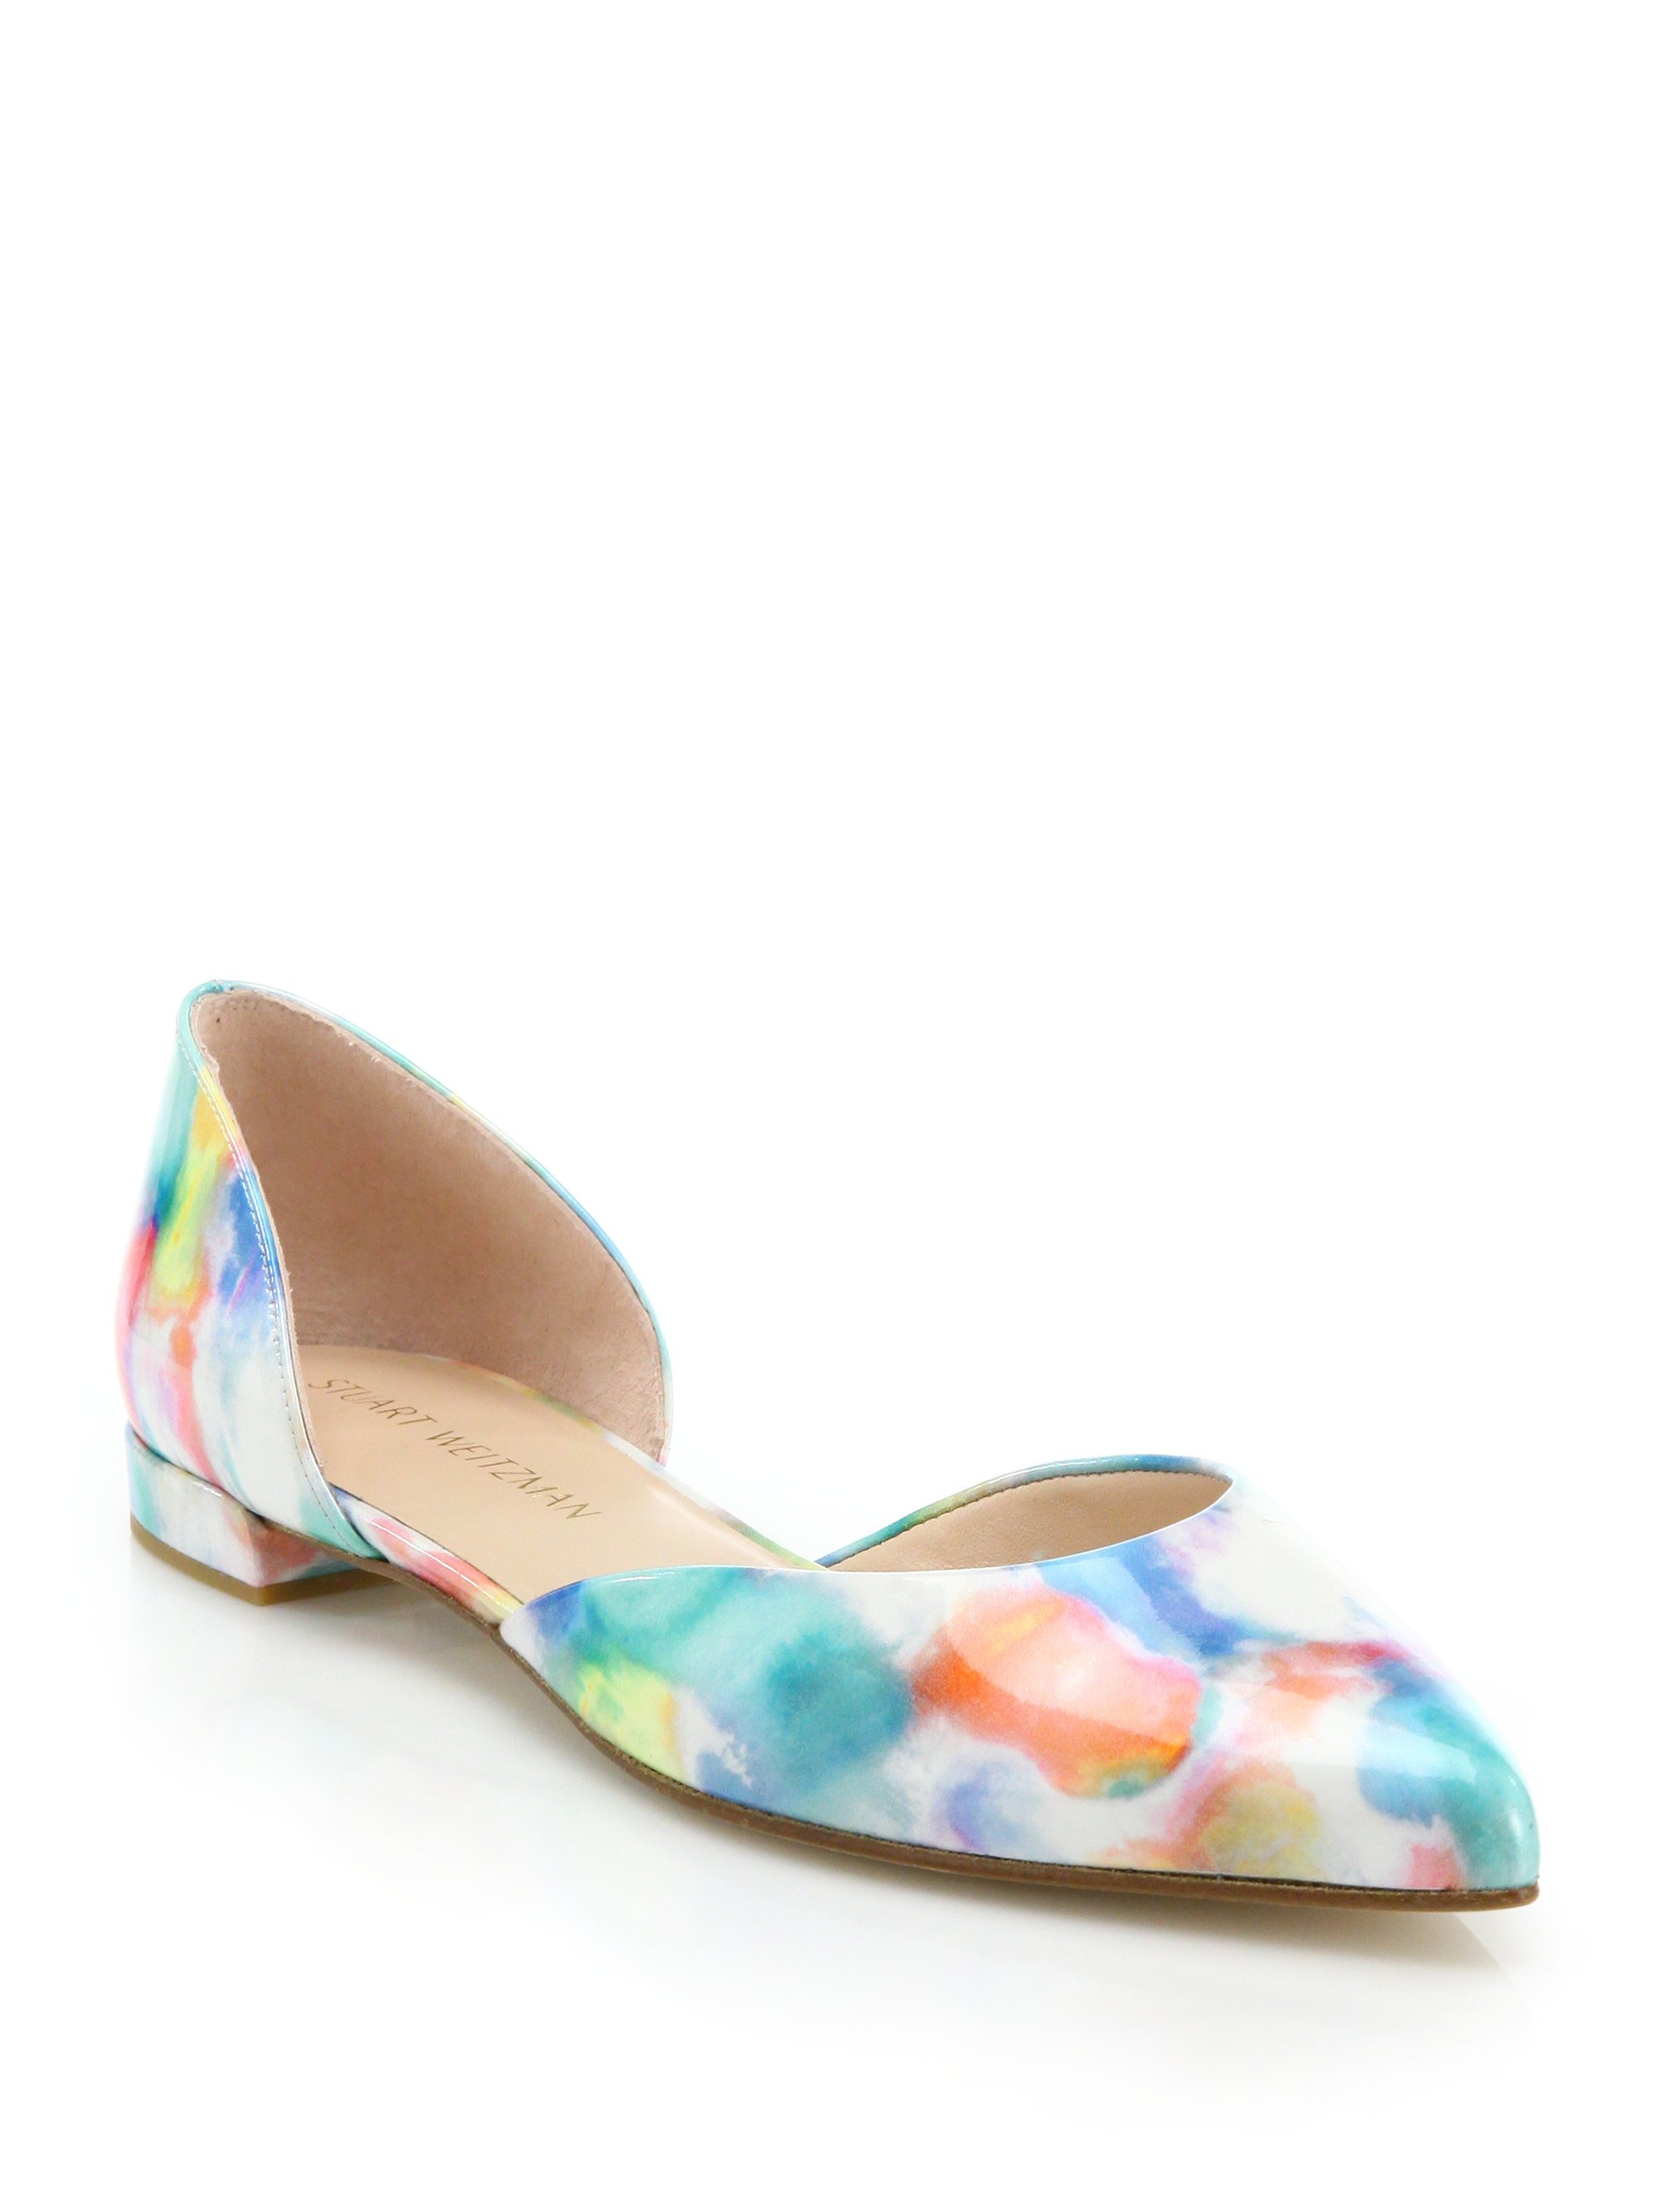 Stuart Weitzman Patterned Round-Toe Flats buy cheap real visit new discount genuine outlet big discount clearance sale Rtlo3r5c